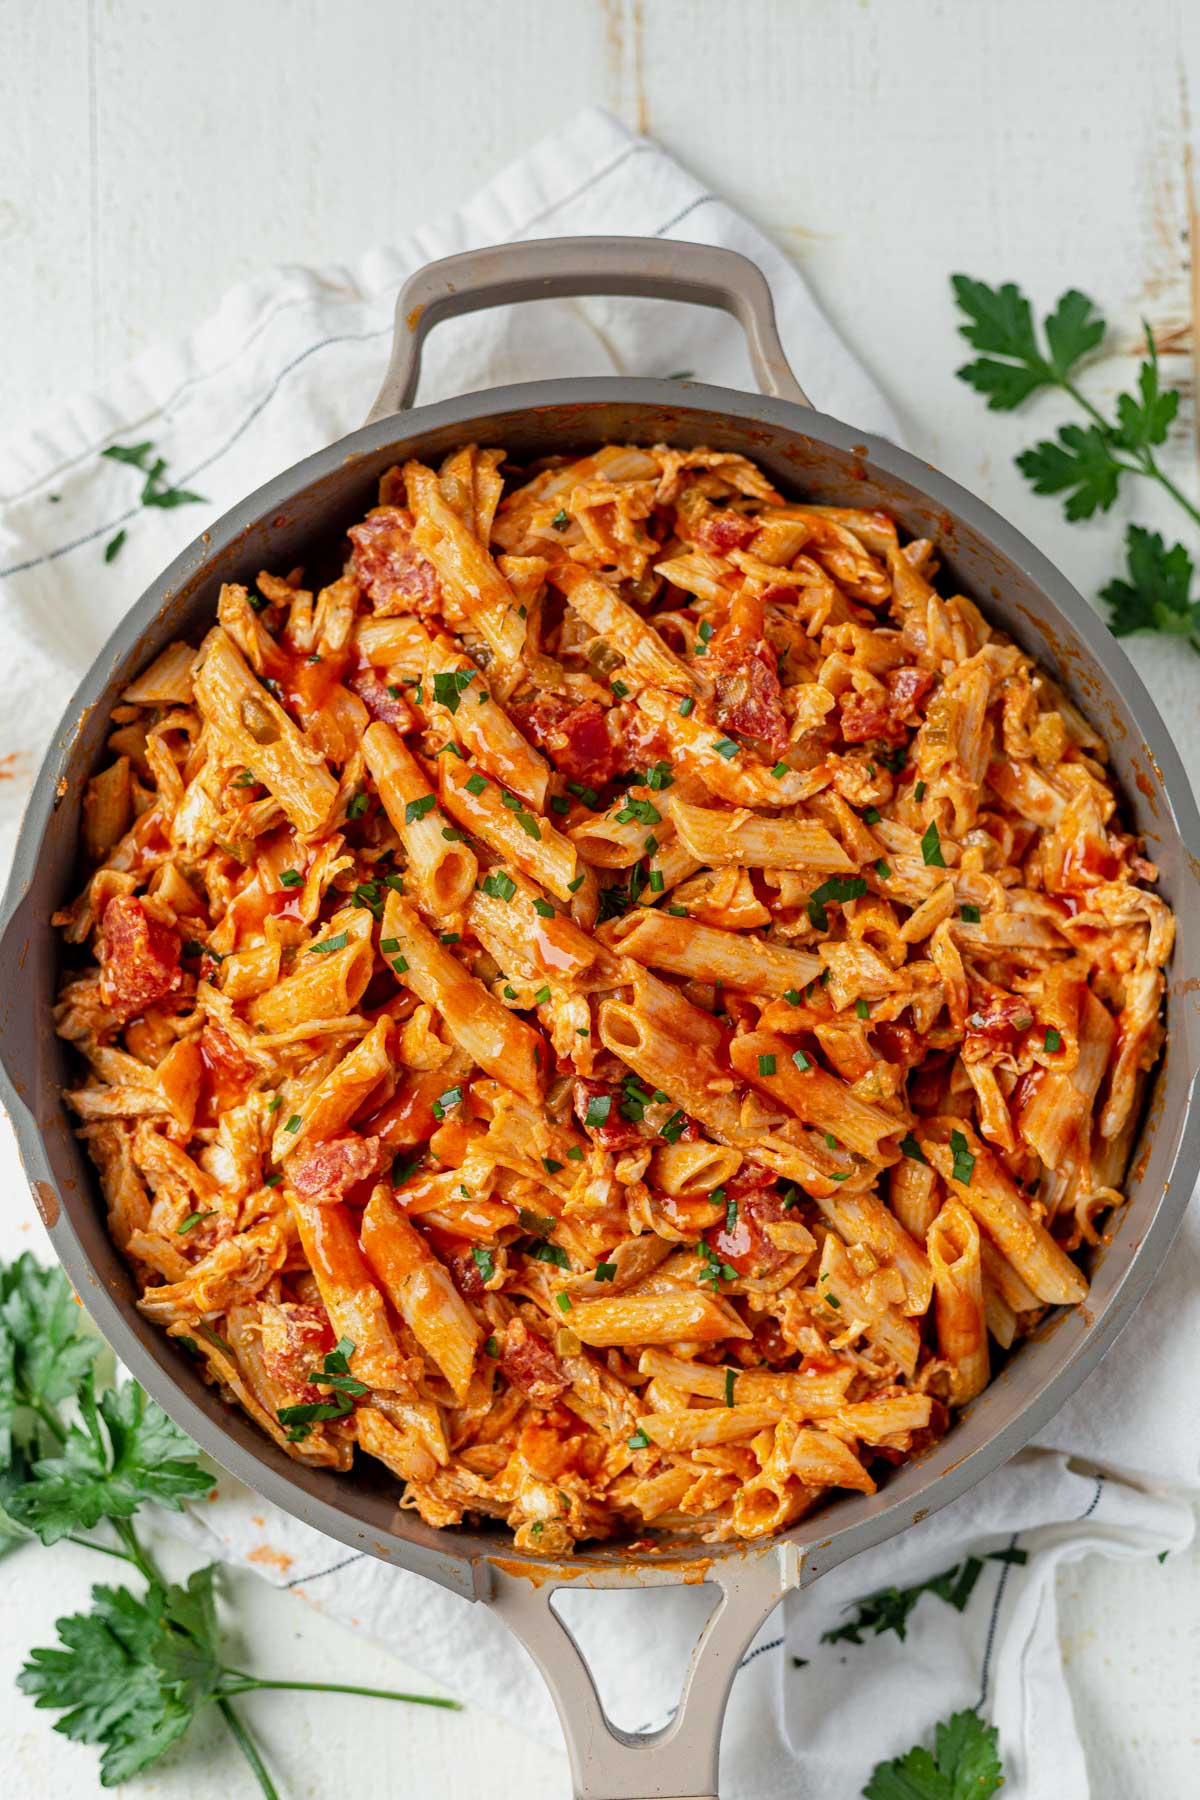 buffalo chicken pasta in a deep skillet topped with chopped parsley